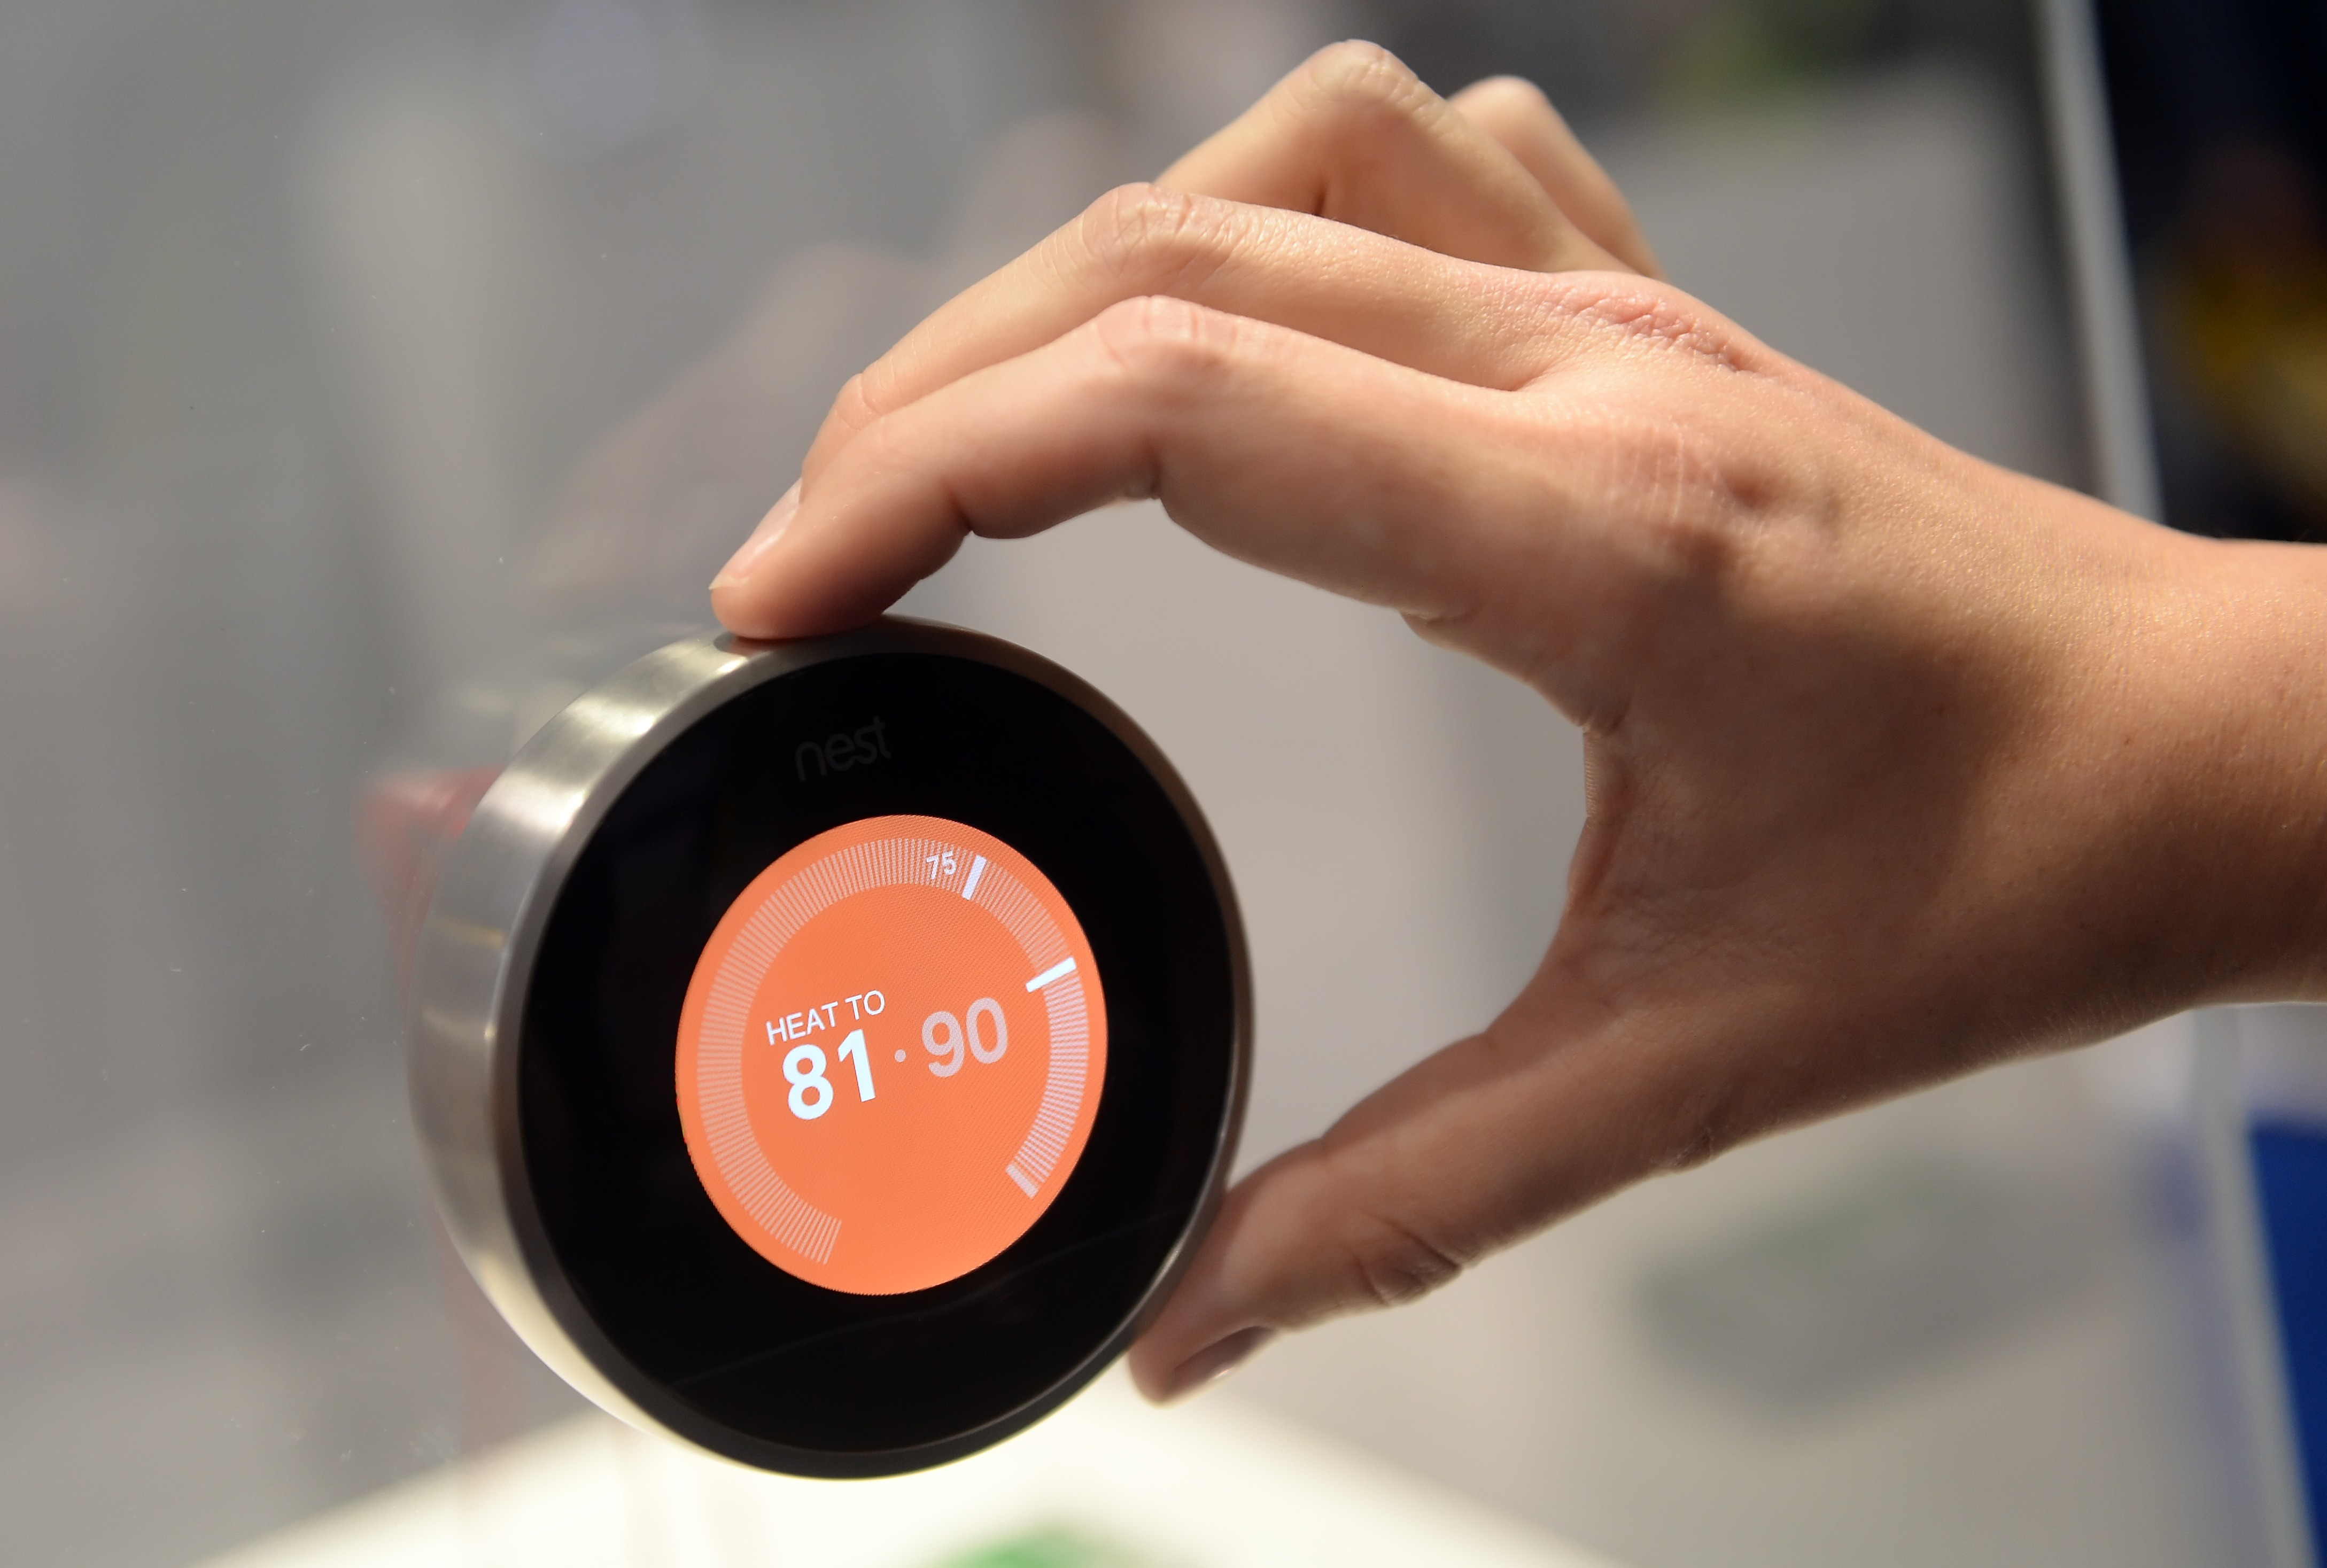 A thermostat from 'Nest' displayed at Consumer Electronics Show in Las Vegas on Jan. 8, 2015.